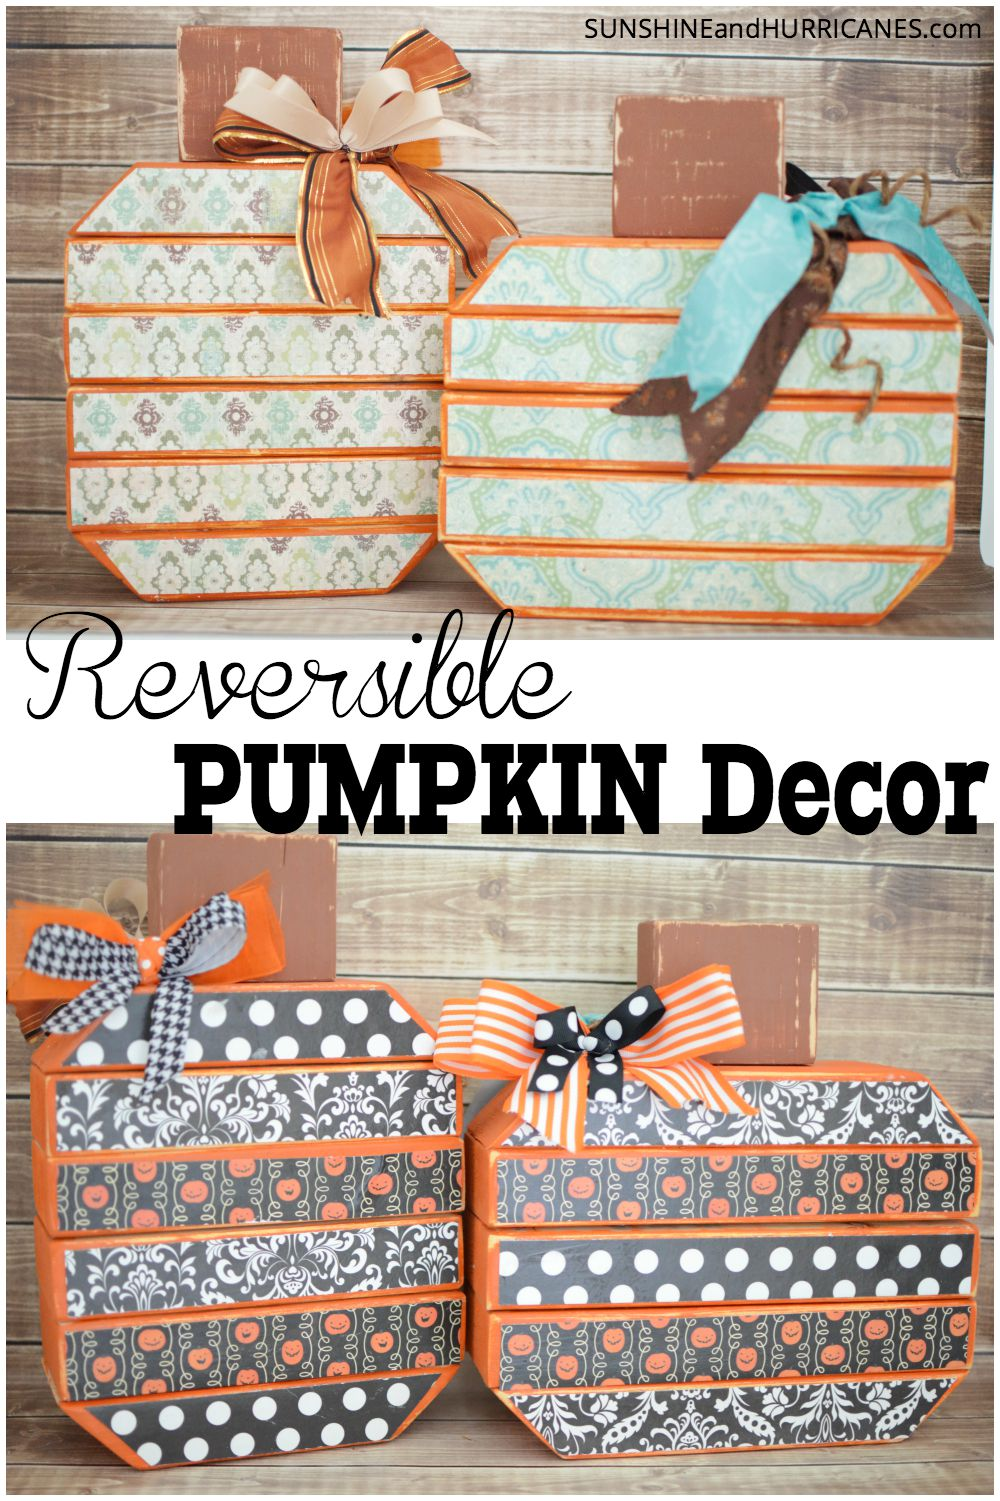 Looking for a super easy way to decorate for more than one season? This super cute Reversible Pumpkin Decor is a budget friendly craft that is super simple. A fun way to have both neutral fall decor and Holiday decor all in one. Reversible Pumpkin Decor. SunshineandHurricanes.com